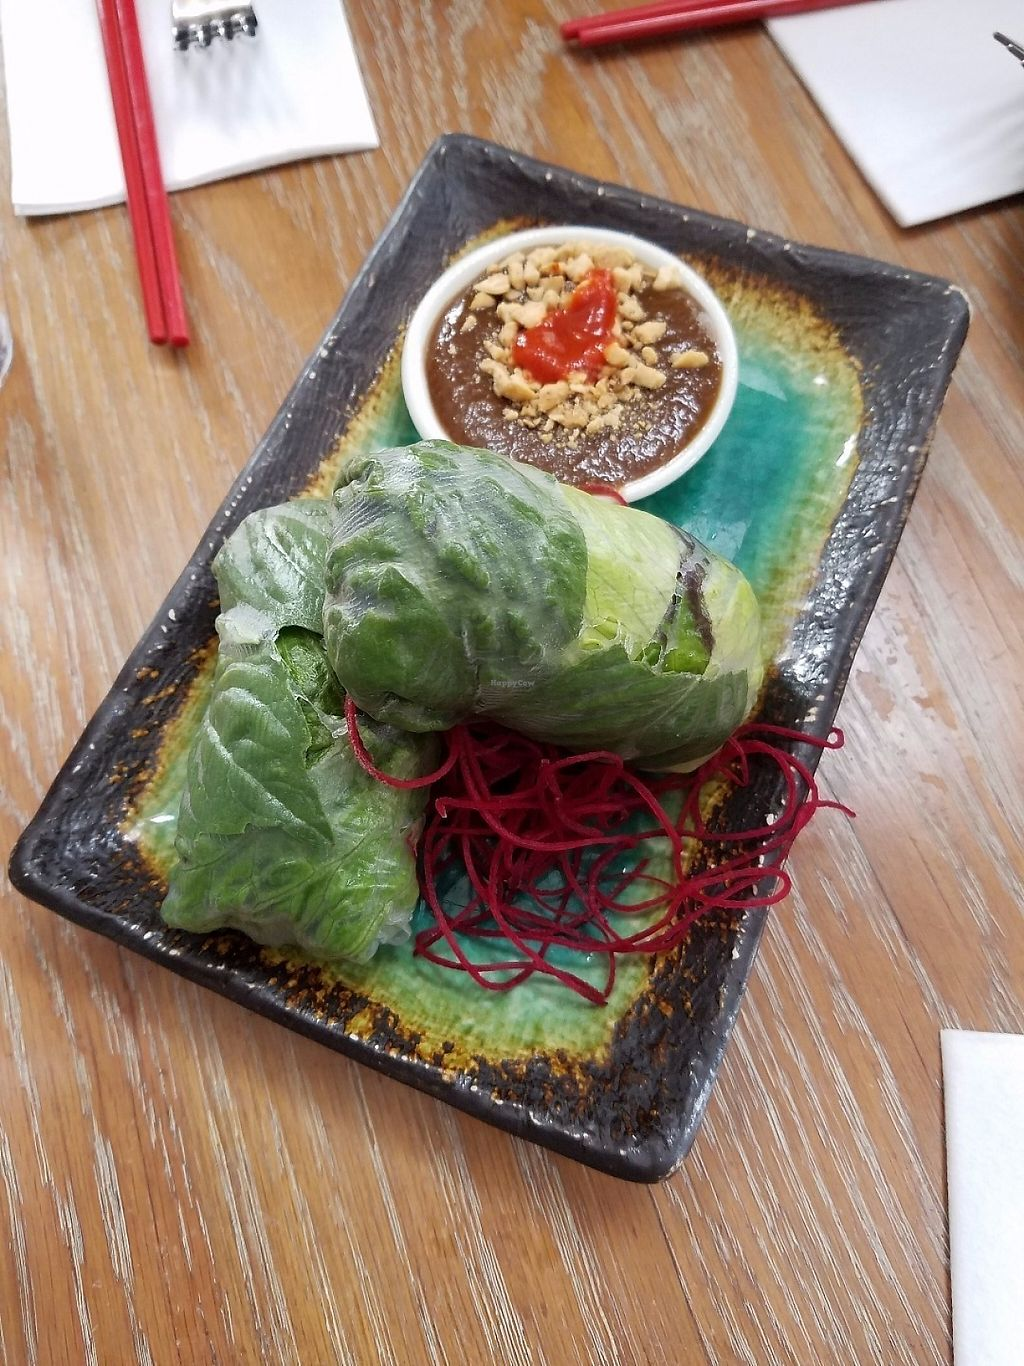 """Photo of DC Noodles  by <a href=""""/members/profile/MerryRose"""">MerryRose</a> <br/>The veggie spring rolls with Thai peanut sauce <br/> May 11, 2017  - <a href='/contact/abuse/image/92005/257889'>Report</a>"""